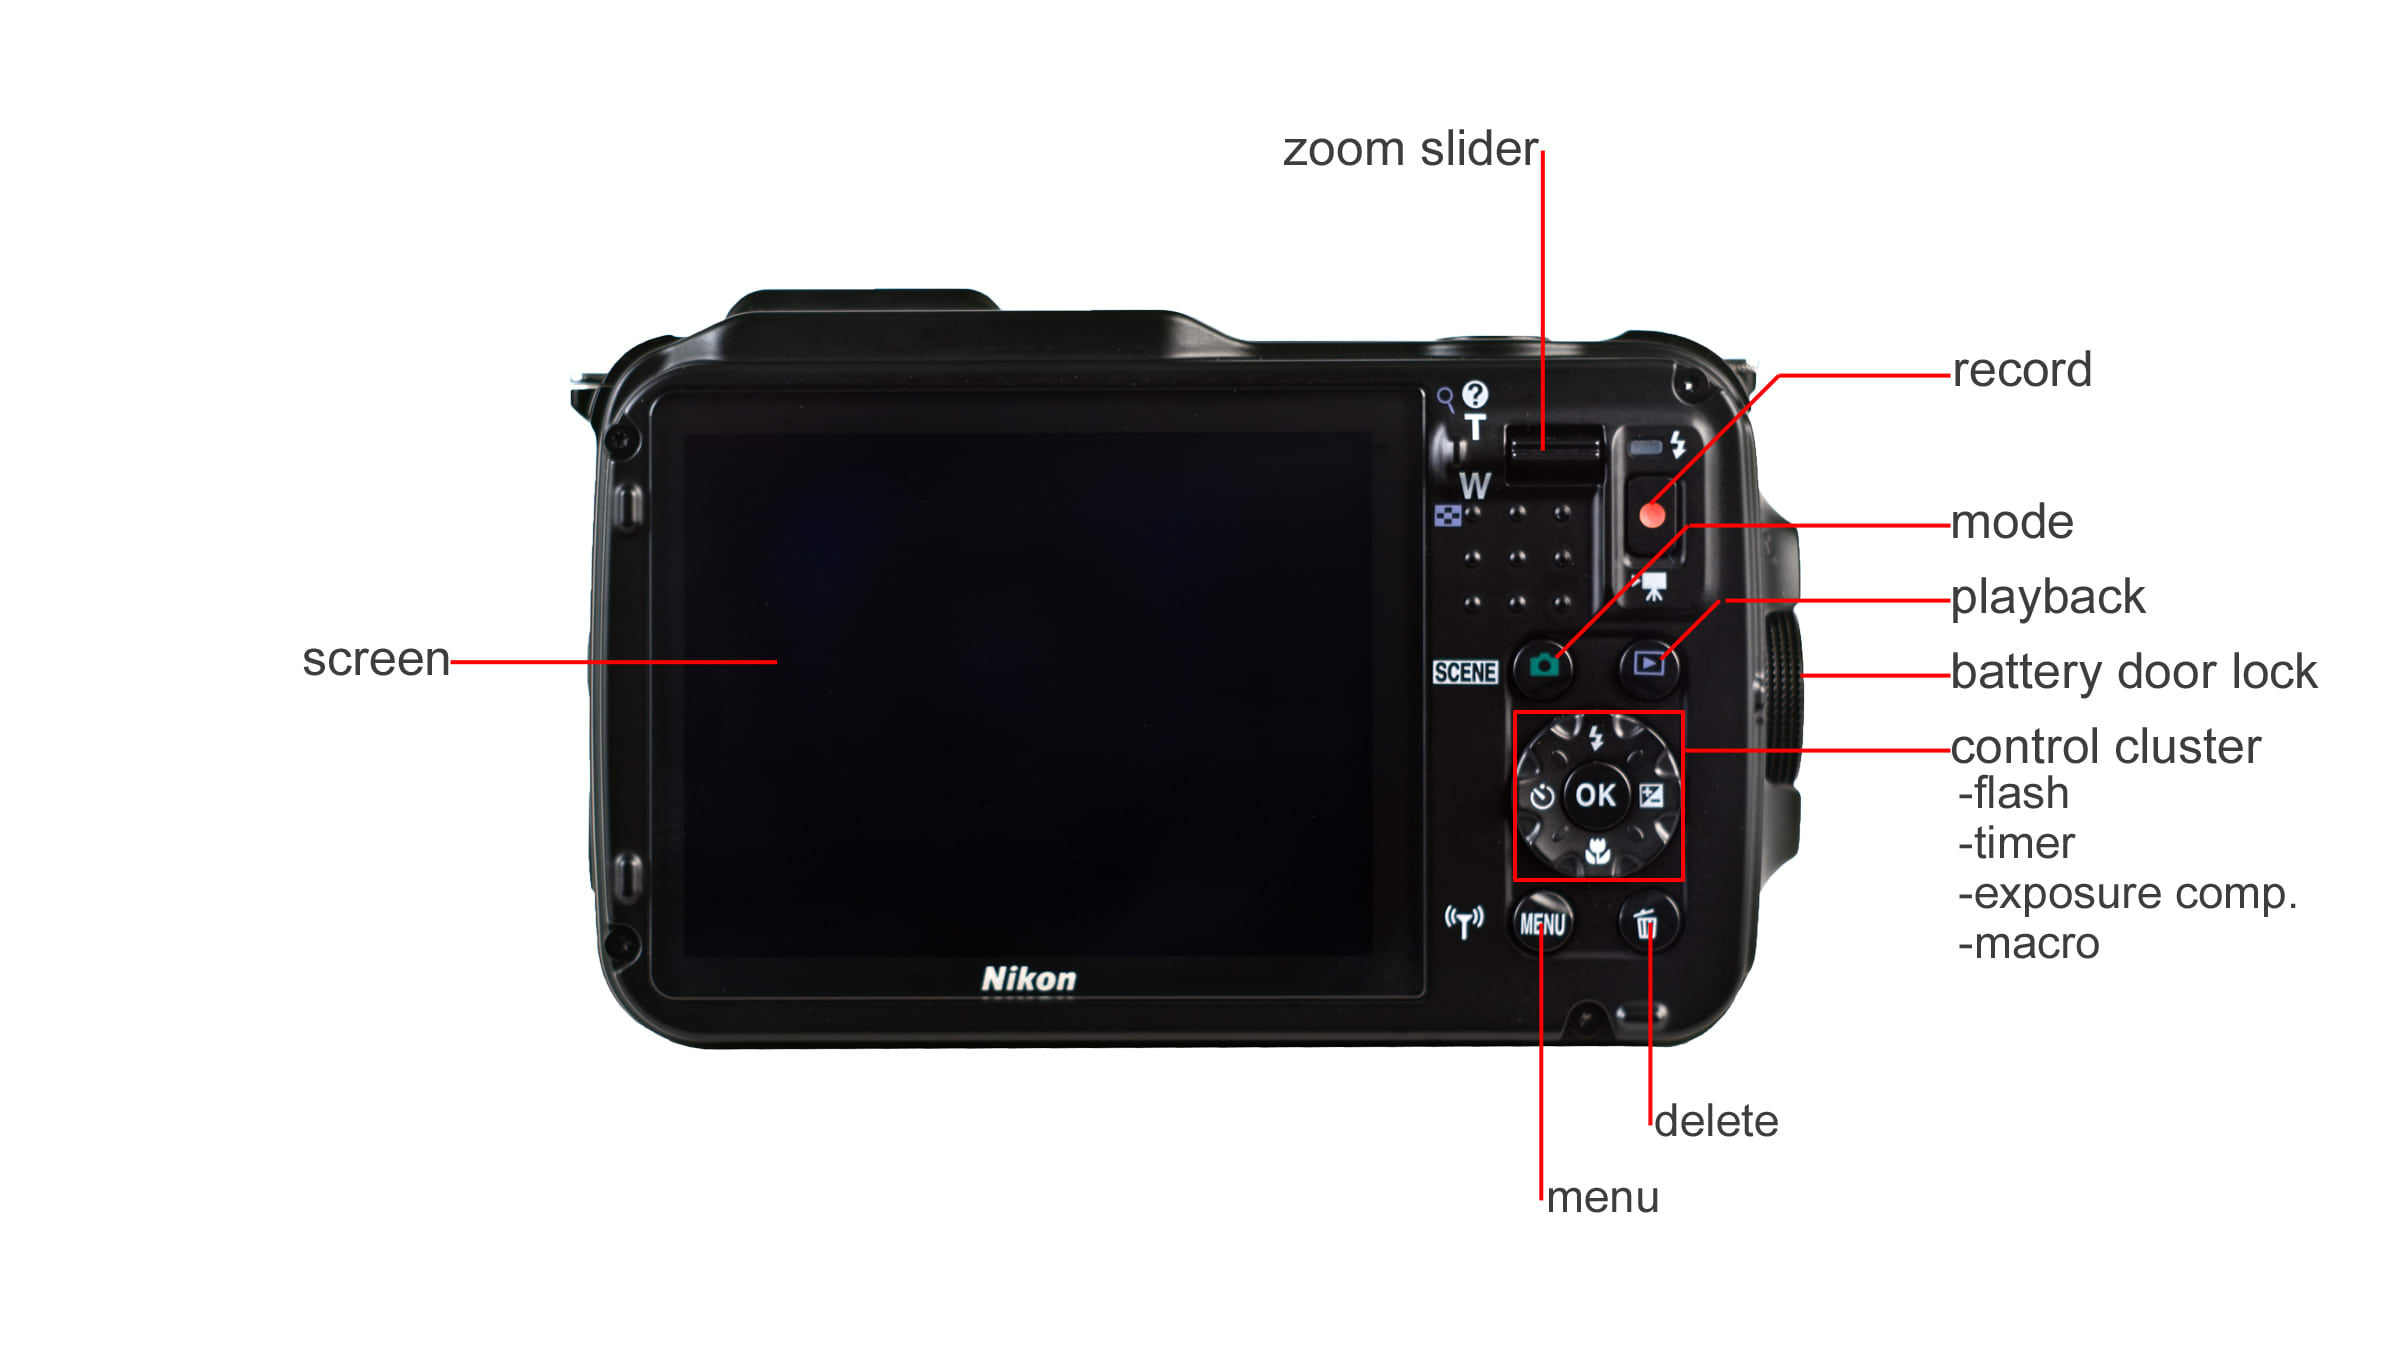 A breakdown of the Nikon AW120's back side.